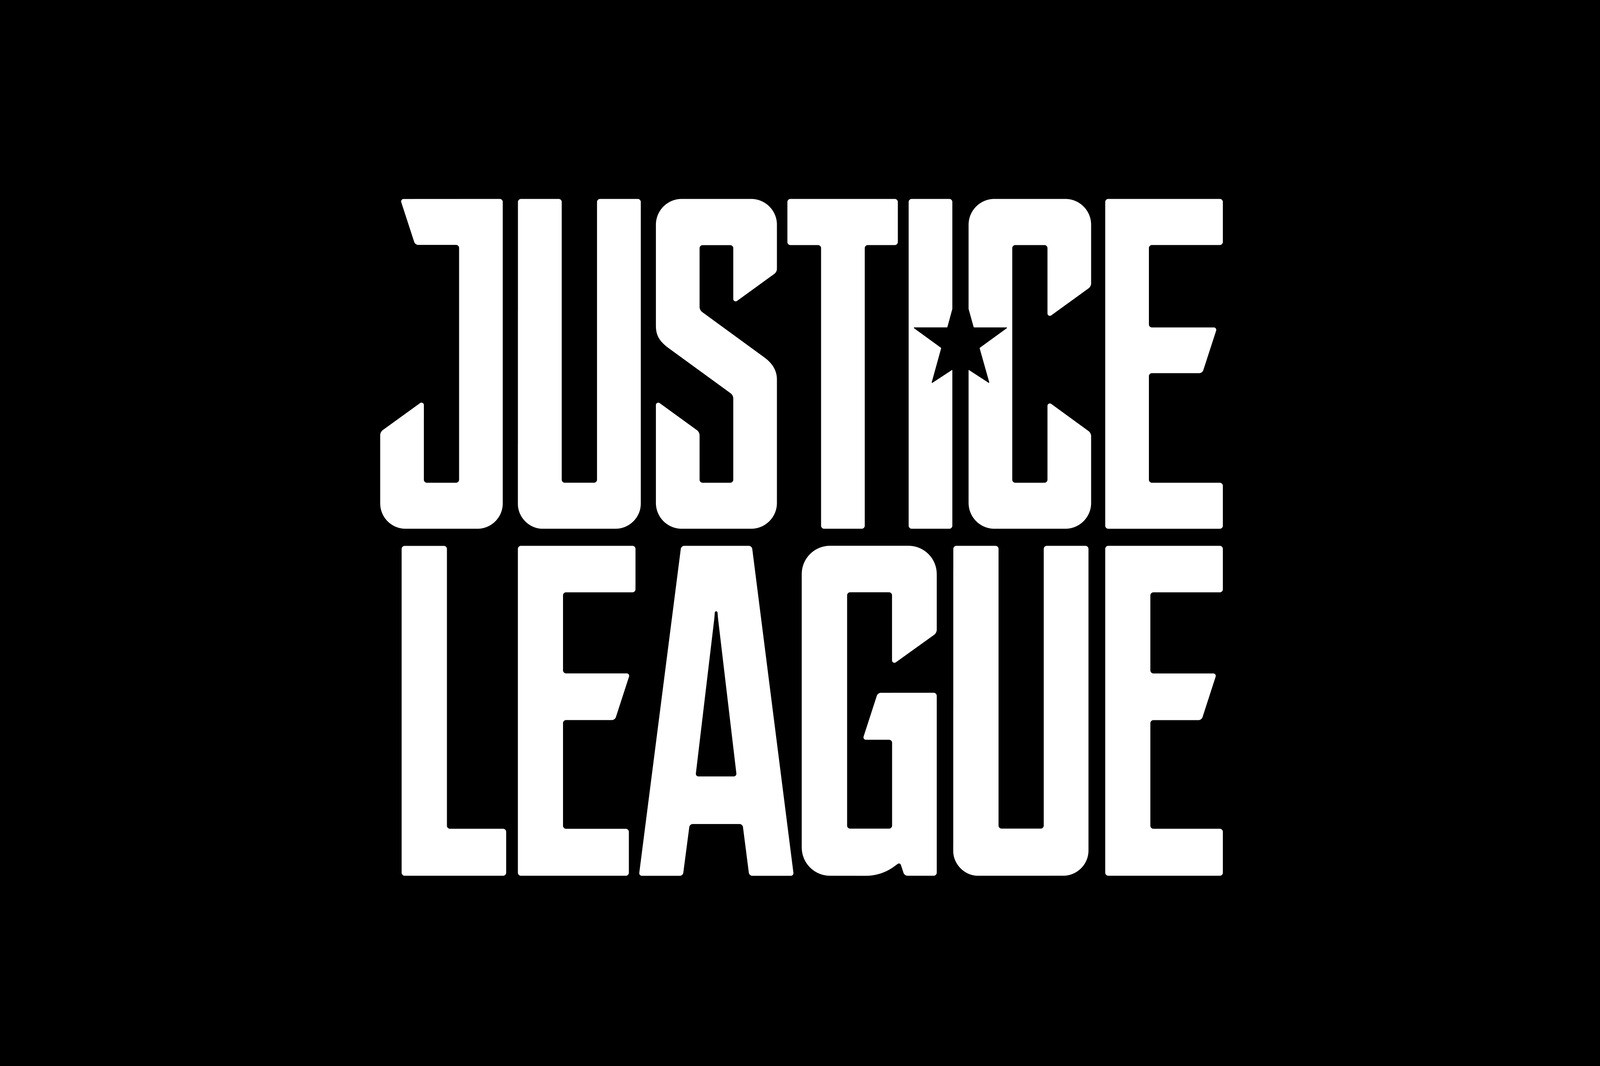 New 'Justice League' Photo Shows Battle Ready Aquaman, Wonder Woman, Cyborg